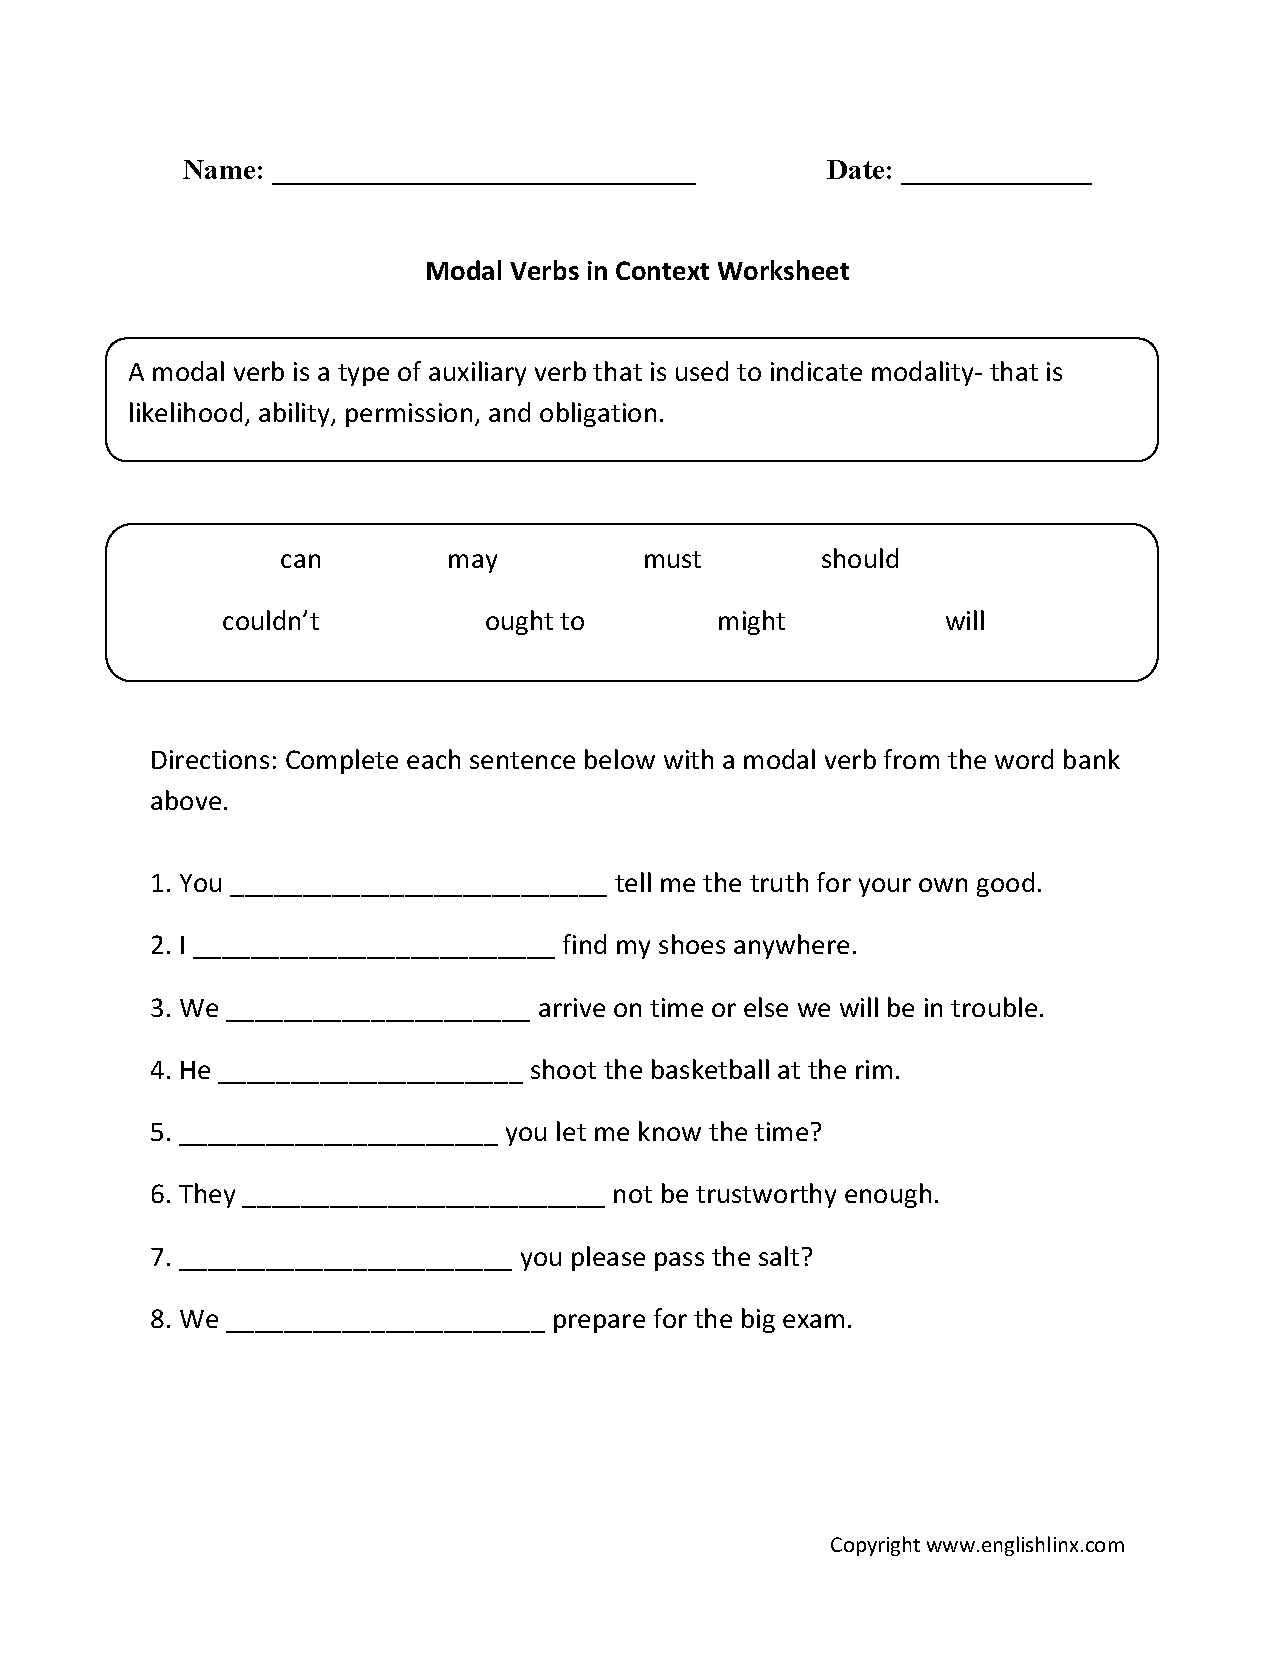 Aldiablosus  Inspiring Worksheet For Verbs  Coffemix With Outstanding Englishlinxcom  Verbs Worksheets With Charming Universal Law Of Gravitation Worksheet Also Wellness Worksheet In Addition Bipolar Disorder Worksheets And Th Grade Context Clues Worksheets As Well As Proper Nouns Worksheet Nd Grade Additionally Perimeter Area Worksheets From Coffemixcom With Aldiablosus  Outstanding Worksheet For Verbs  Coffemix With Charming Englishlinxcom  Verbs Worksheets And Inspiring Universal Law Of Gravitation Worksheet Also Wellness Worksheet In Addition Bipolar Disorder Worksheets From Coffemixcom